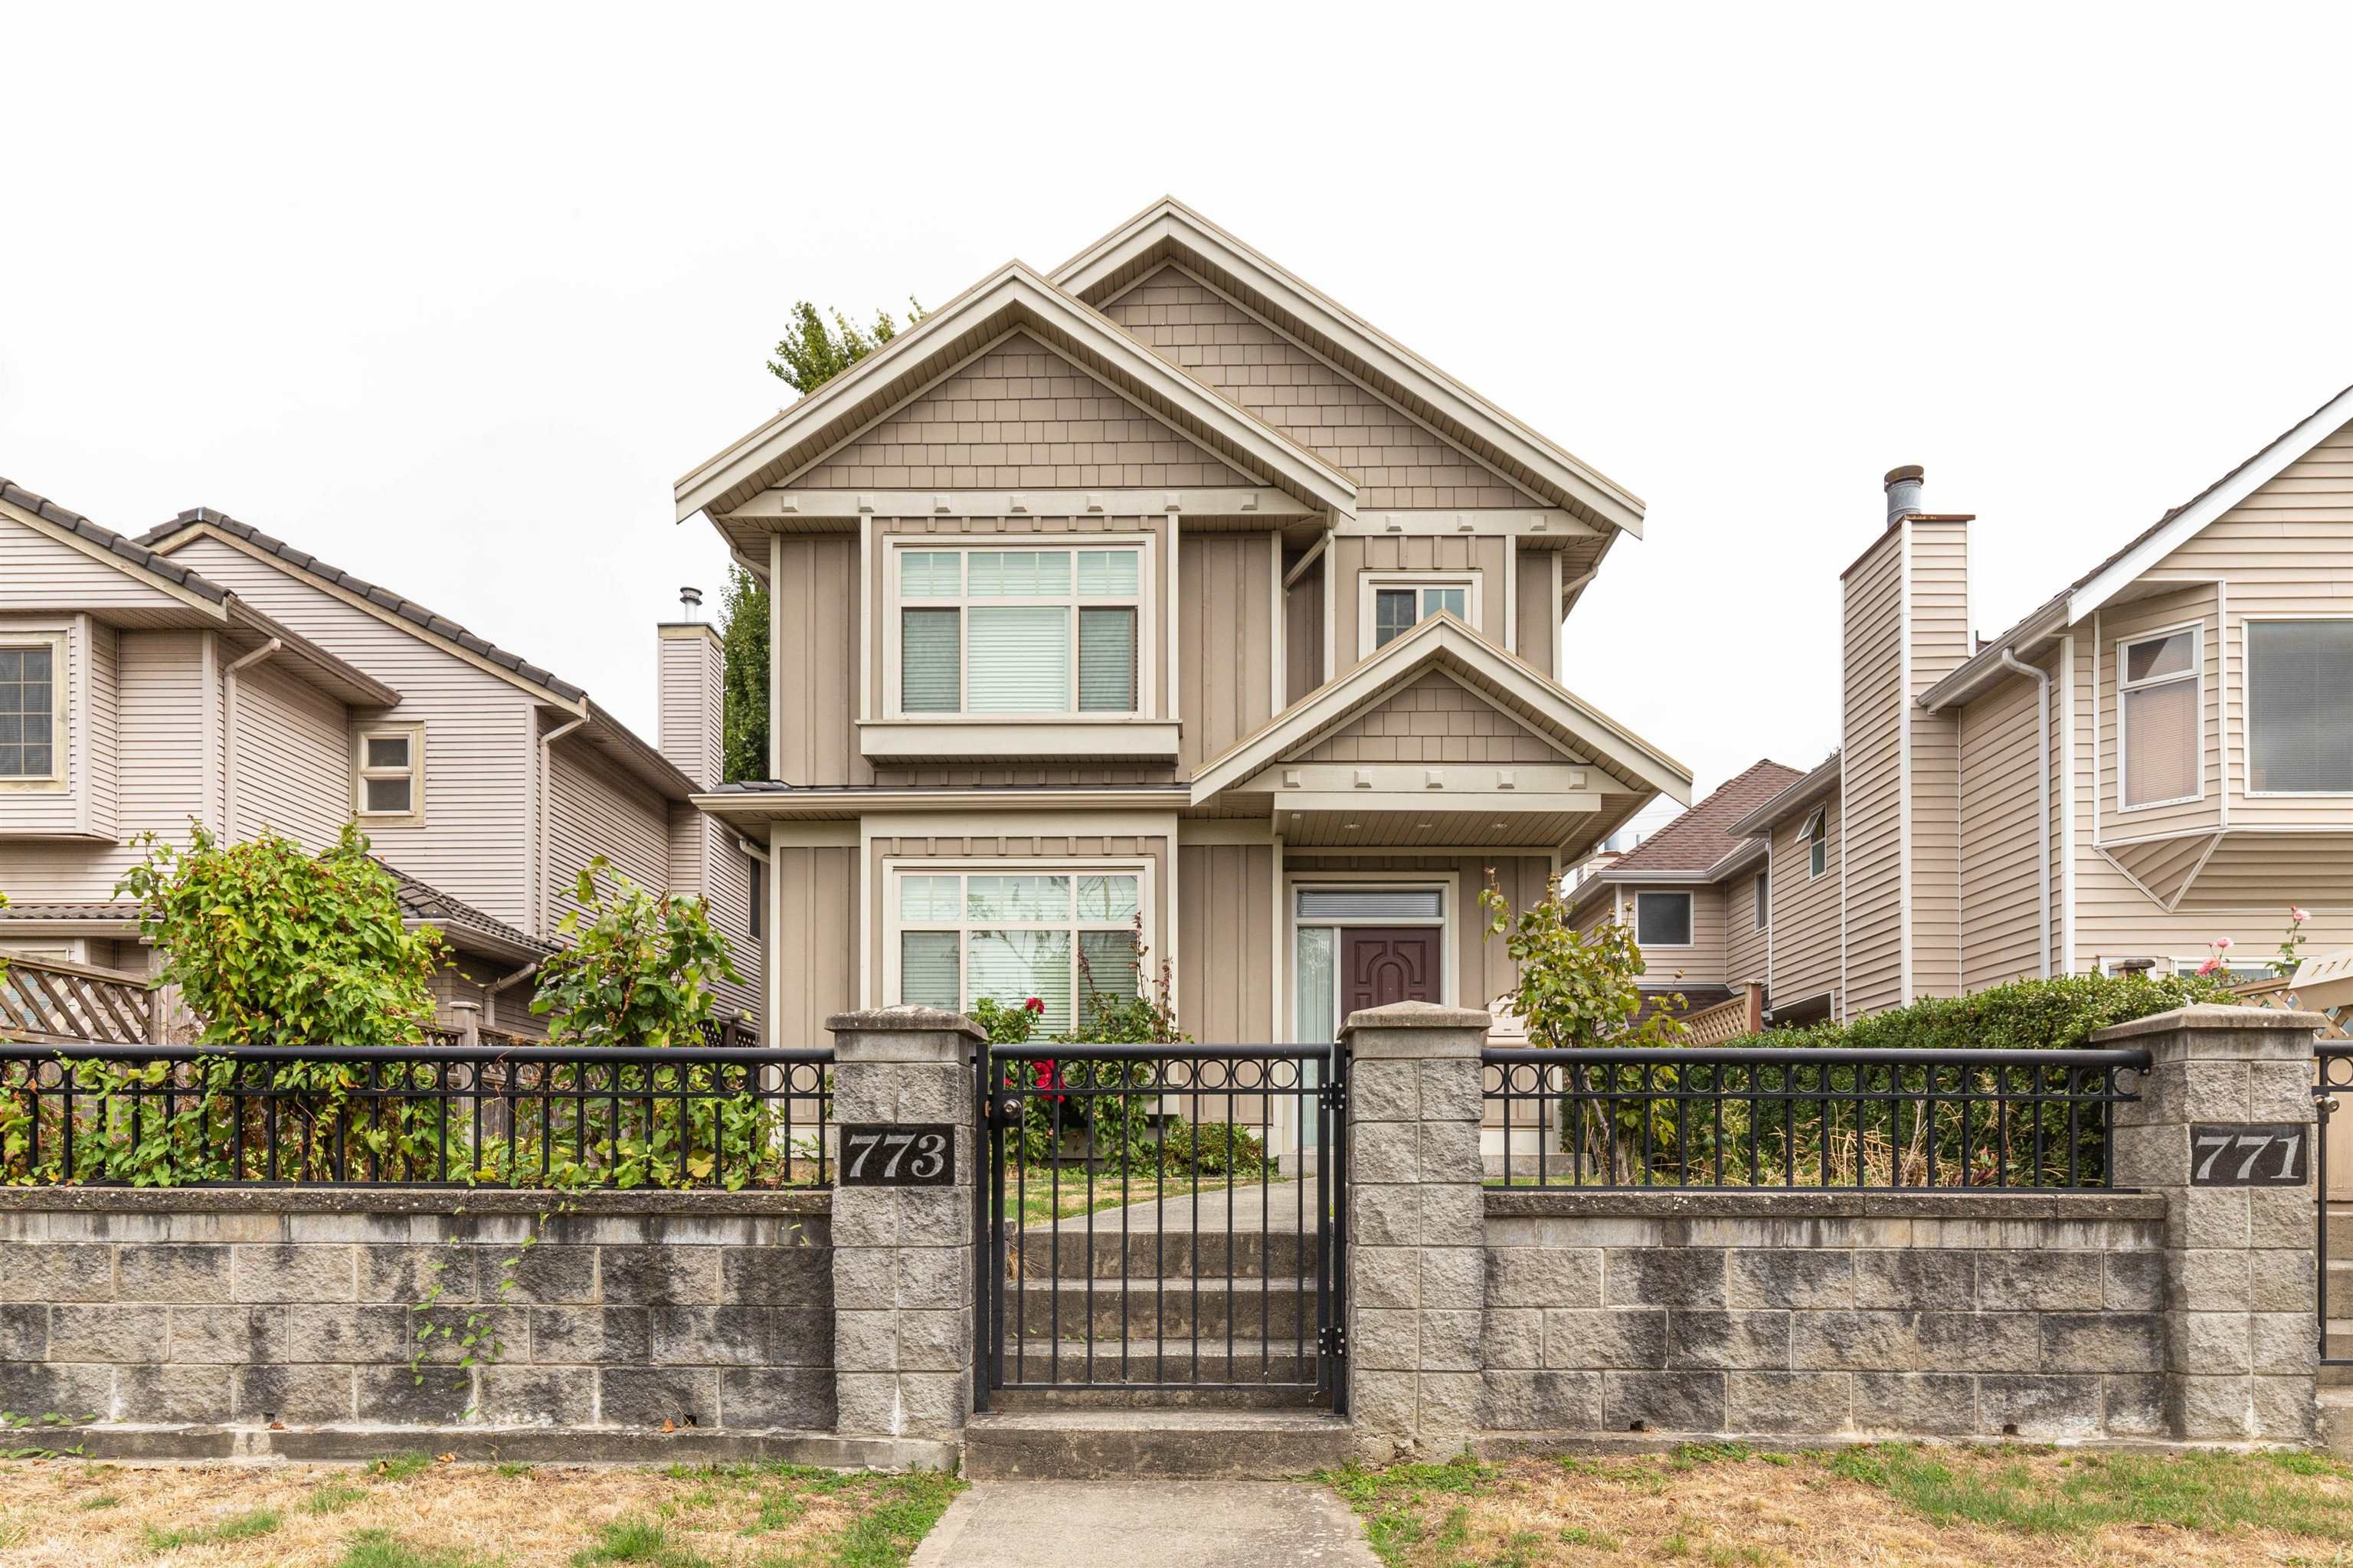 """Main Photo: 773 W 69TH Avenue in Vancouver: Marpole 1/2 Duplex for sale in """"FRONT 1/2 DUPLEX"""" (Vancouver West)  : MLS®# R2615290"""